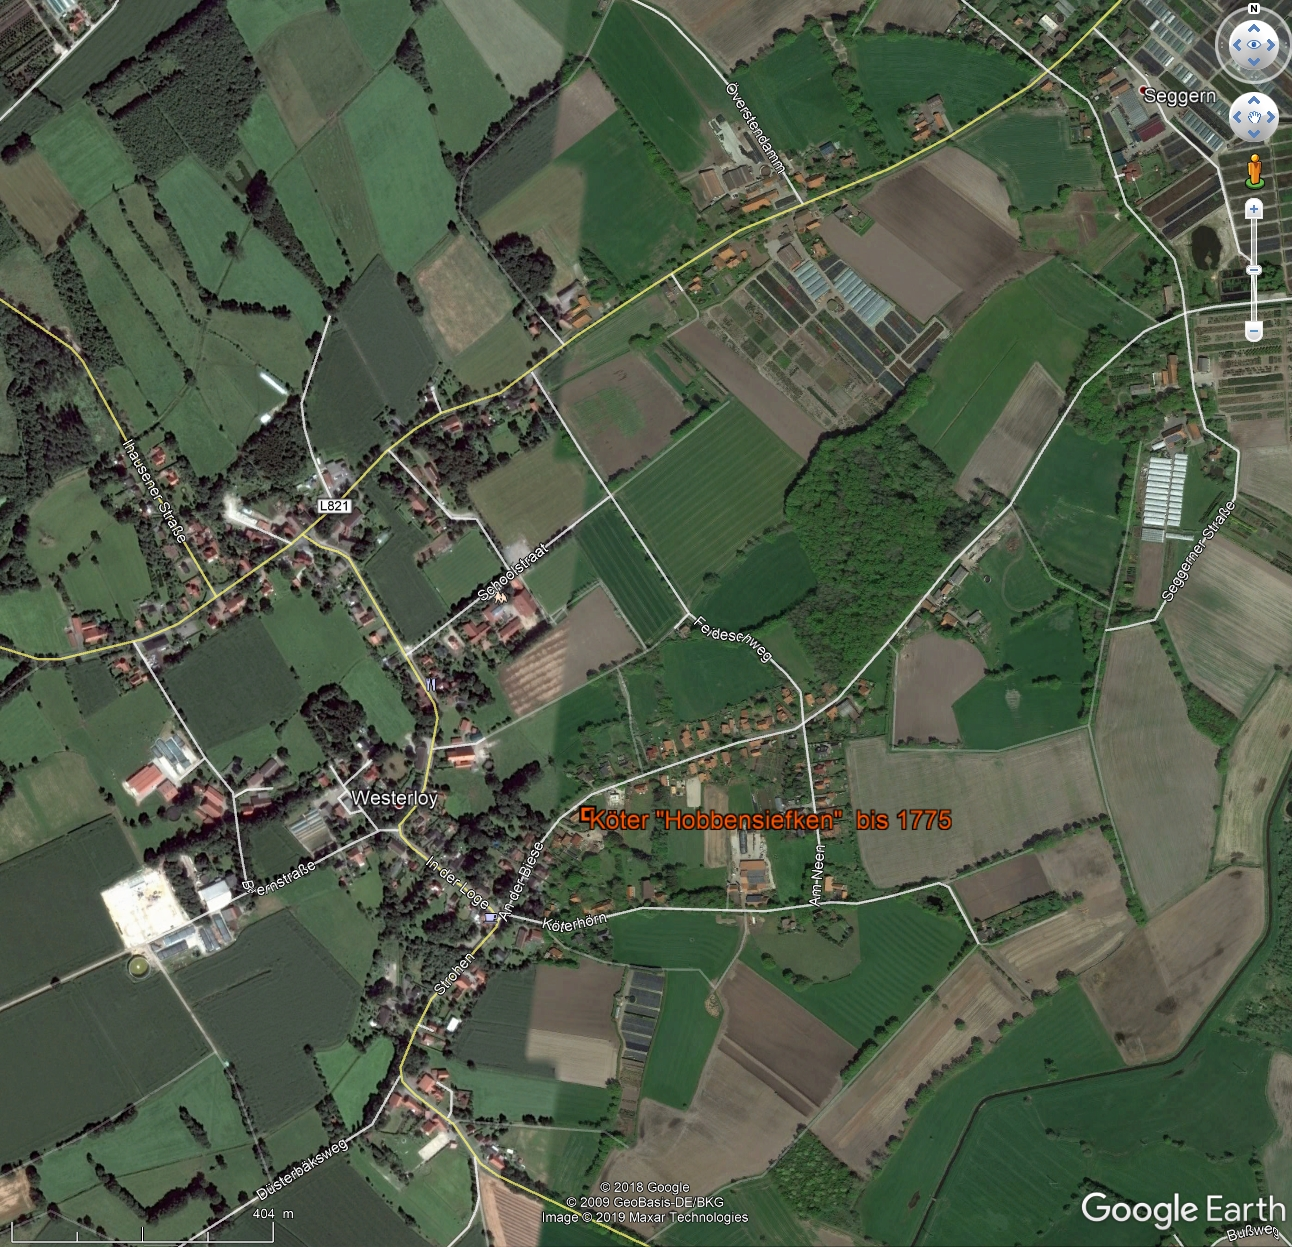 Hof in Westerloy in Google Earth